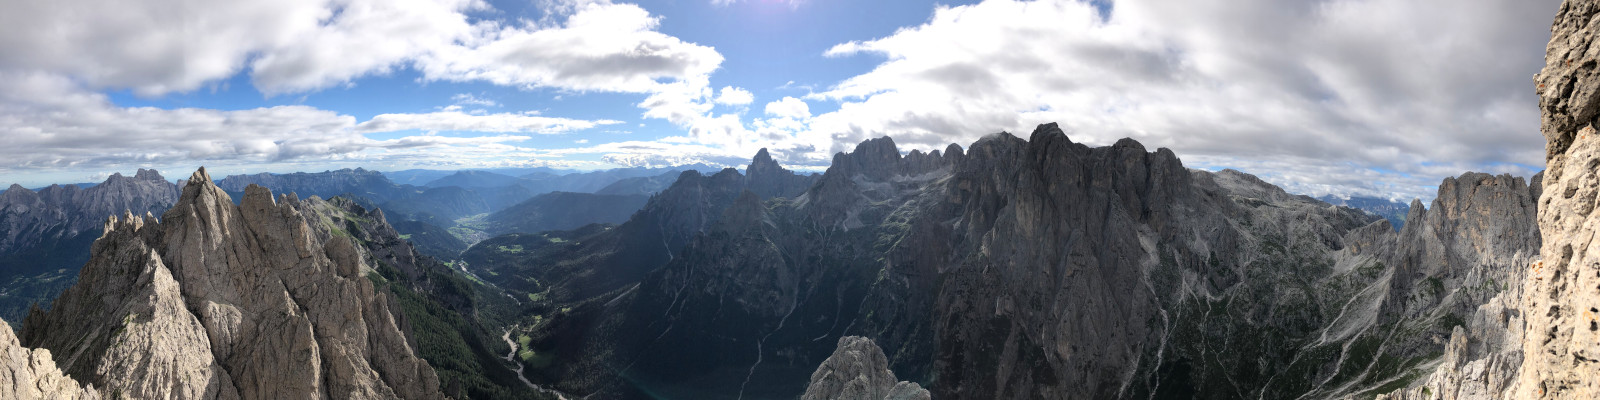 We celebrate the farewell to the Dolomites and Italy